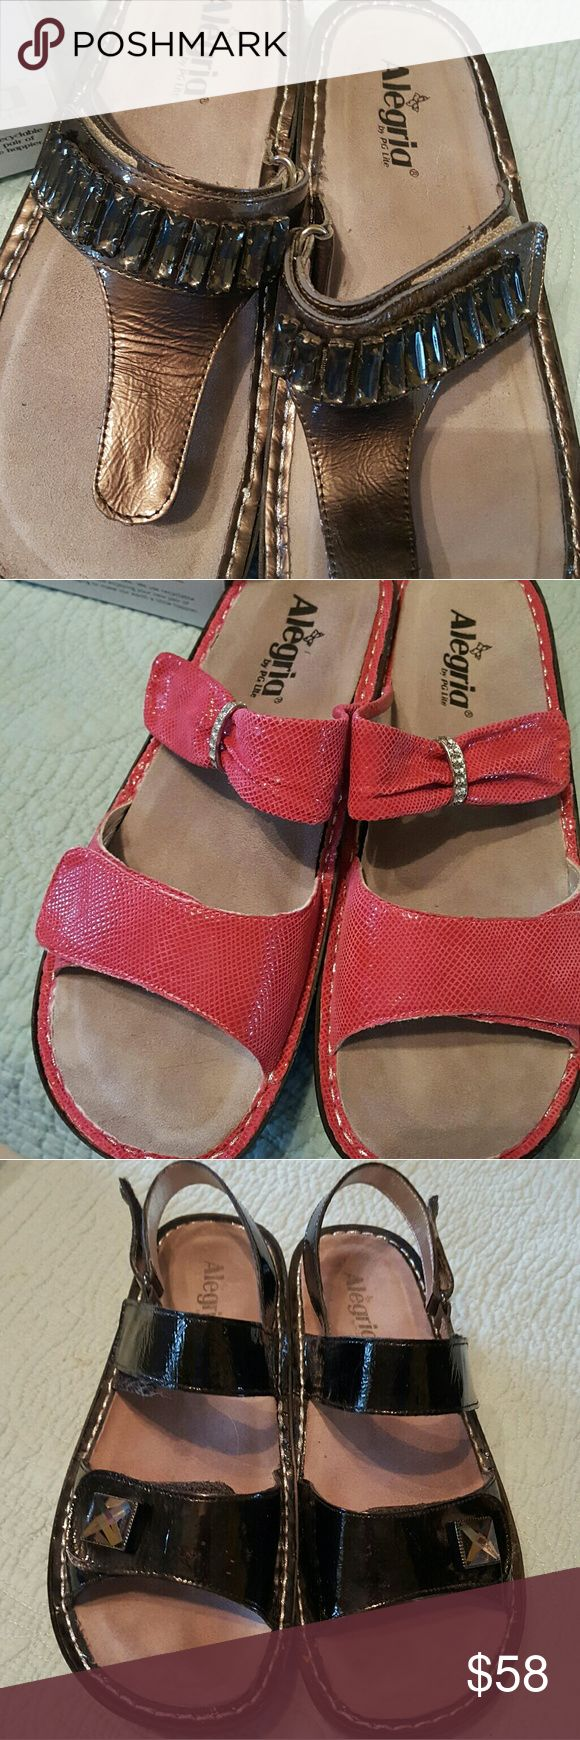 Alegria Sandals Worn once just didn't like them on me. Very comfy. I have a black, pink, and bronze pair. Alegria Shoes Sandals